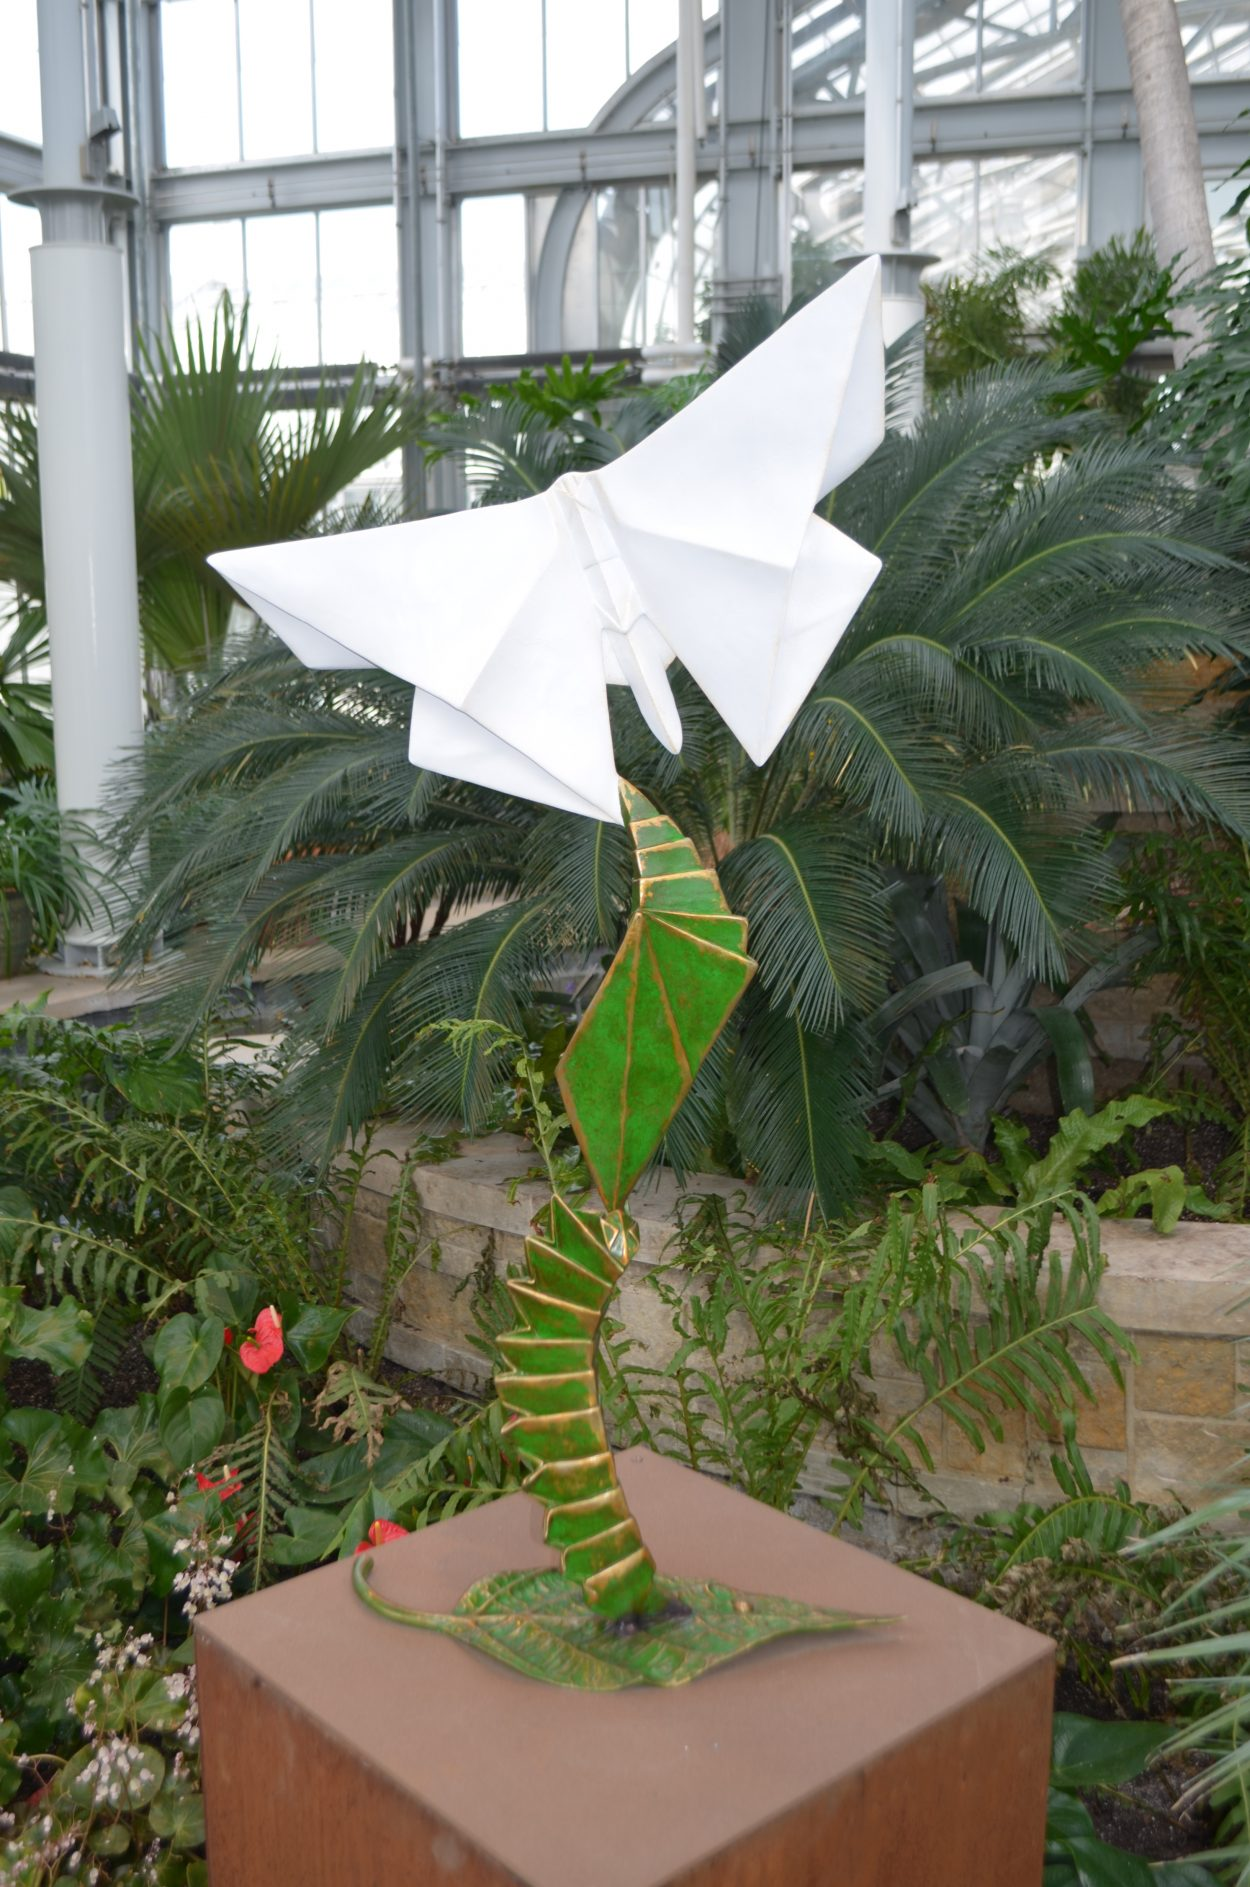 More About Origami in the Garden - Lewis Ginter Botanical ... - photo#27